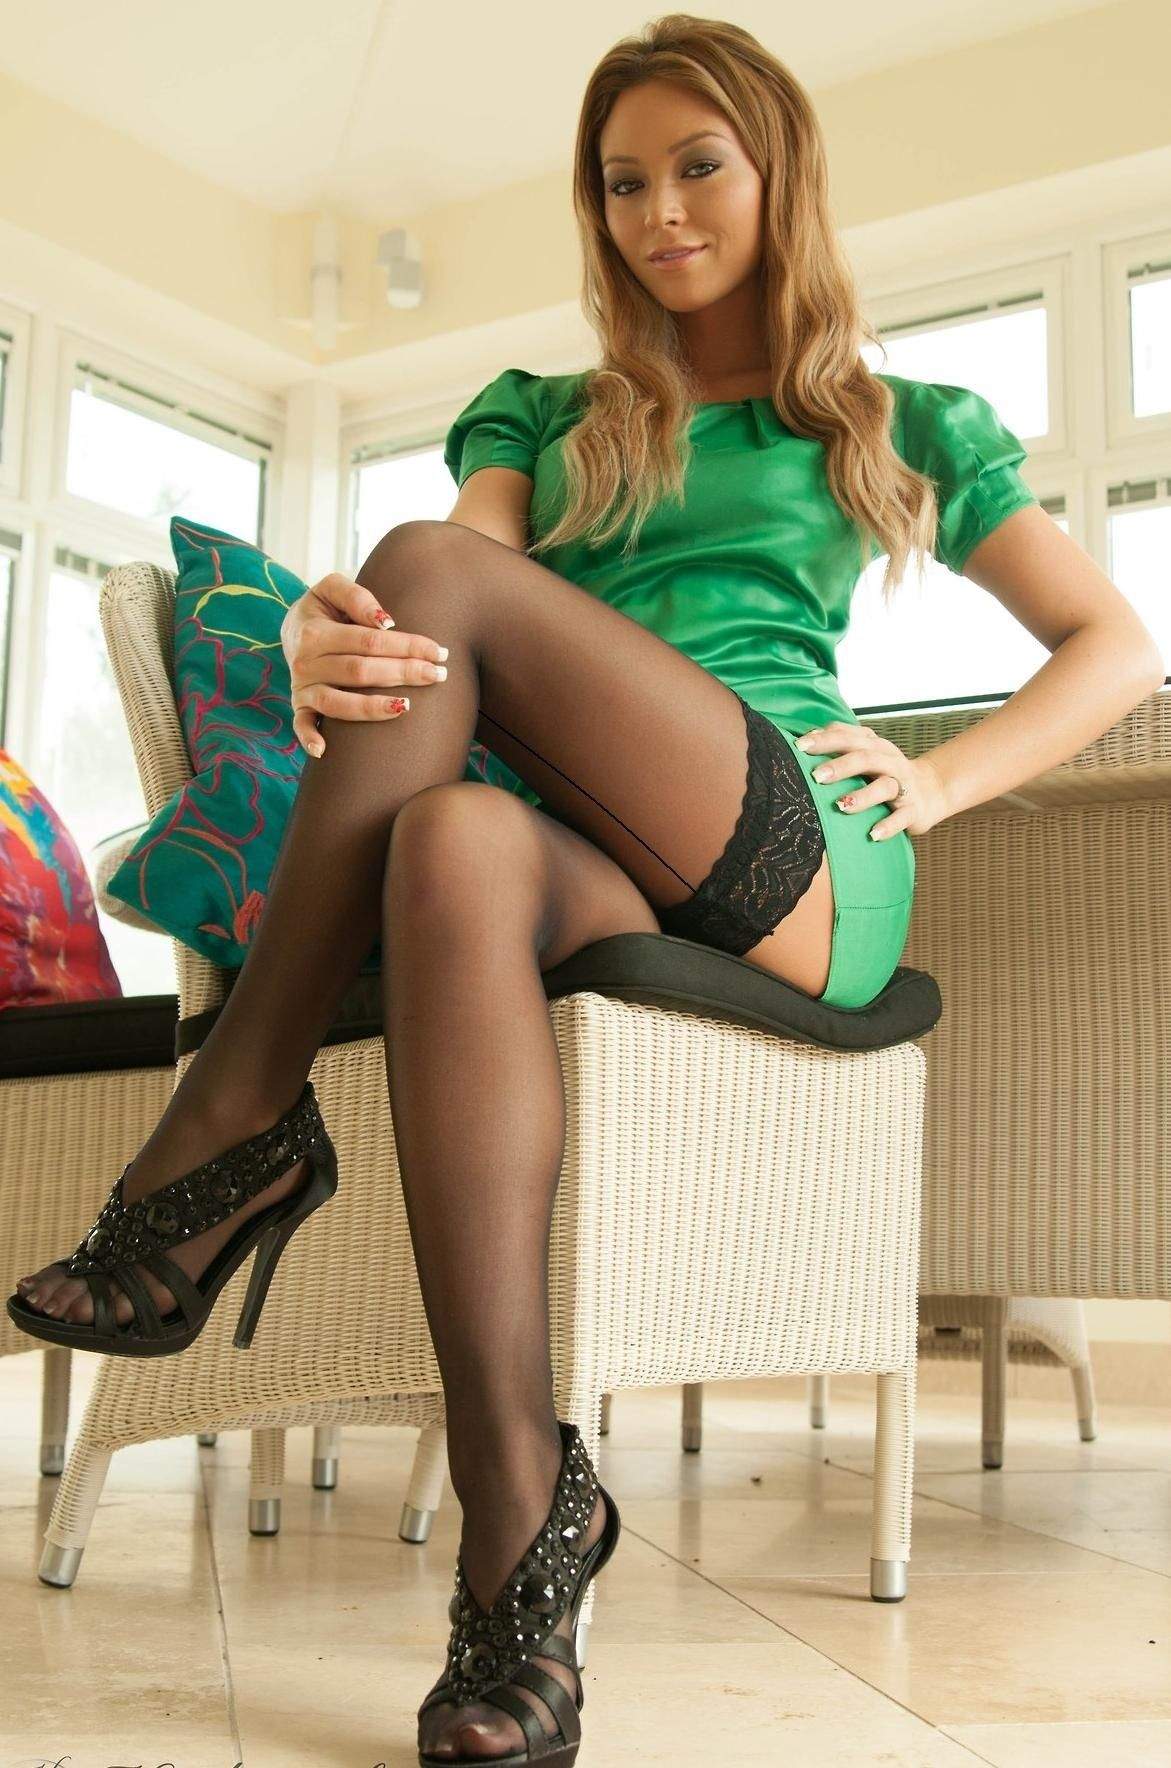 Lovely legs in stockings